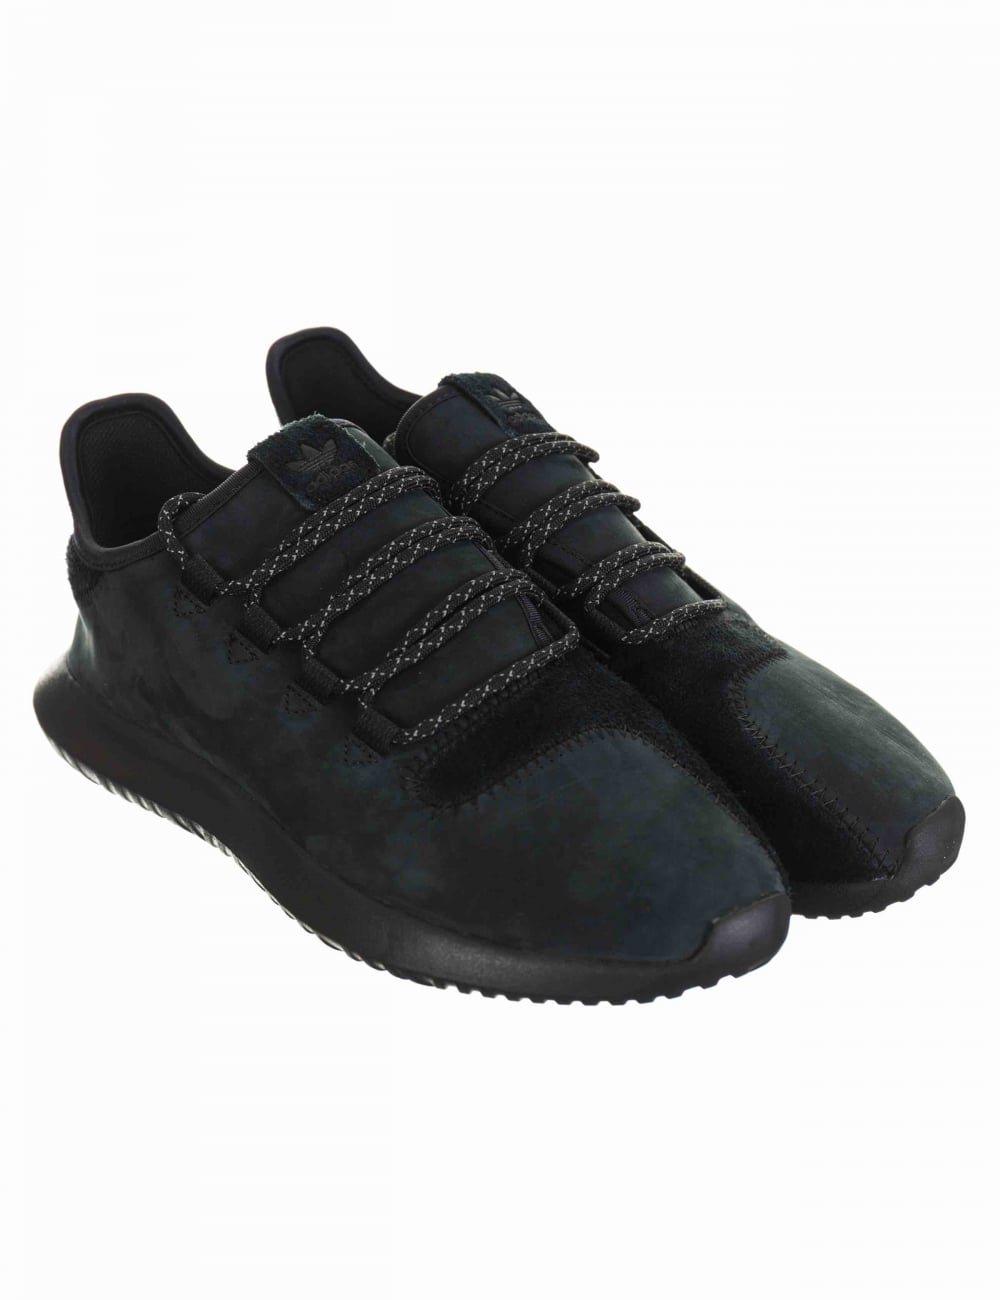 ADIDAS Originals Tubular Shadow Core Black Scarpe Sneaker